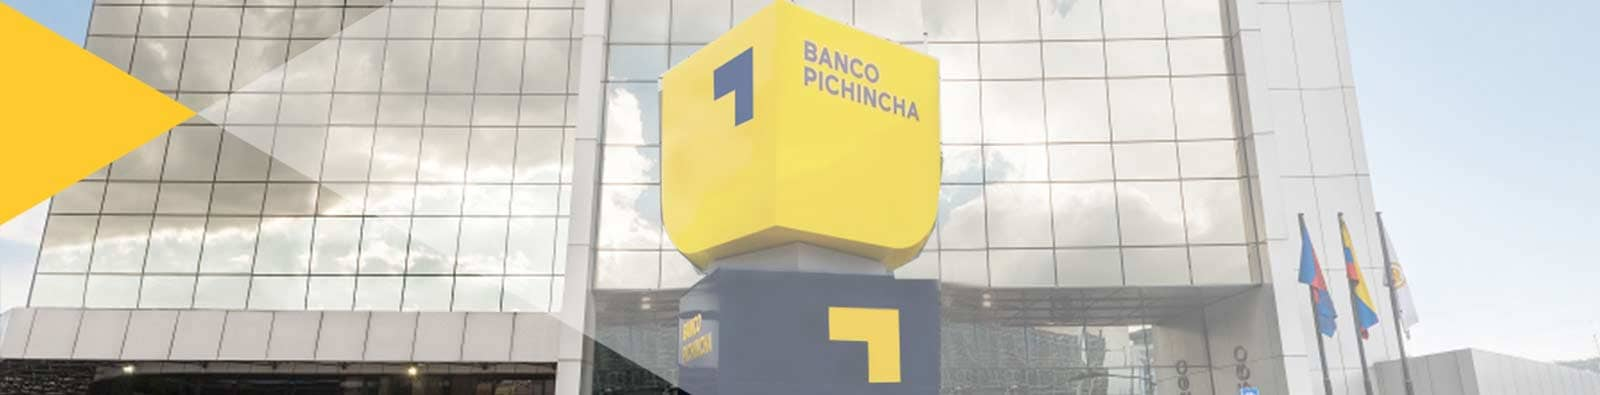 Banco Pichincha began a transformation process to consolidate itself as a banking group with an international presence